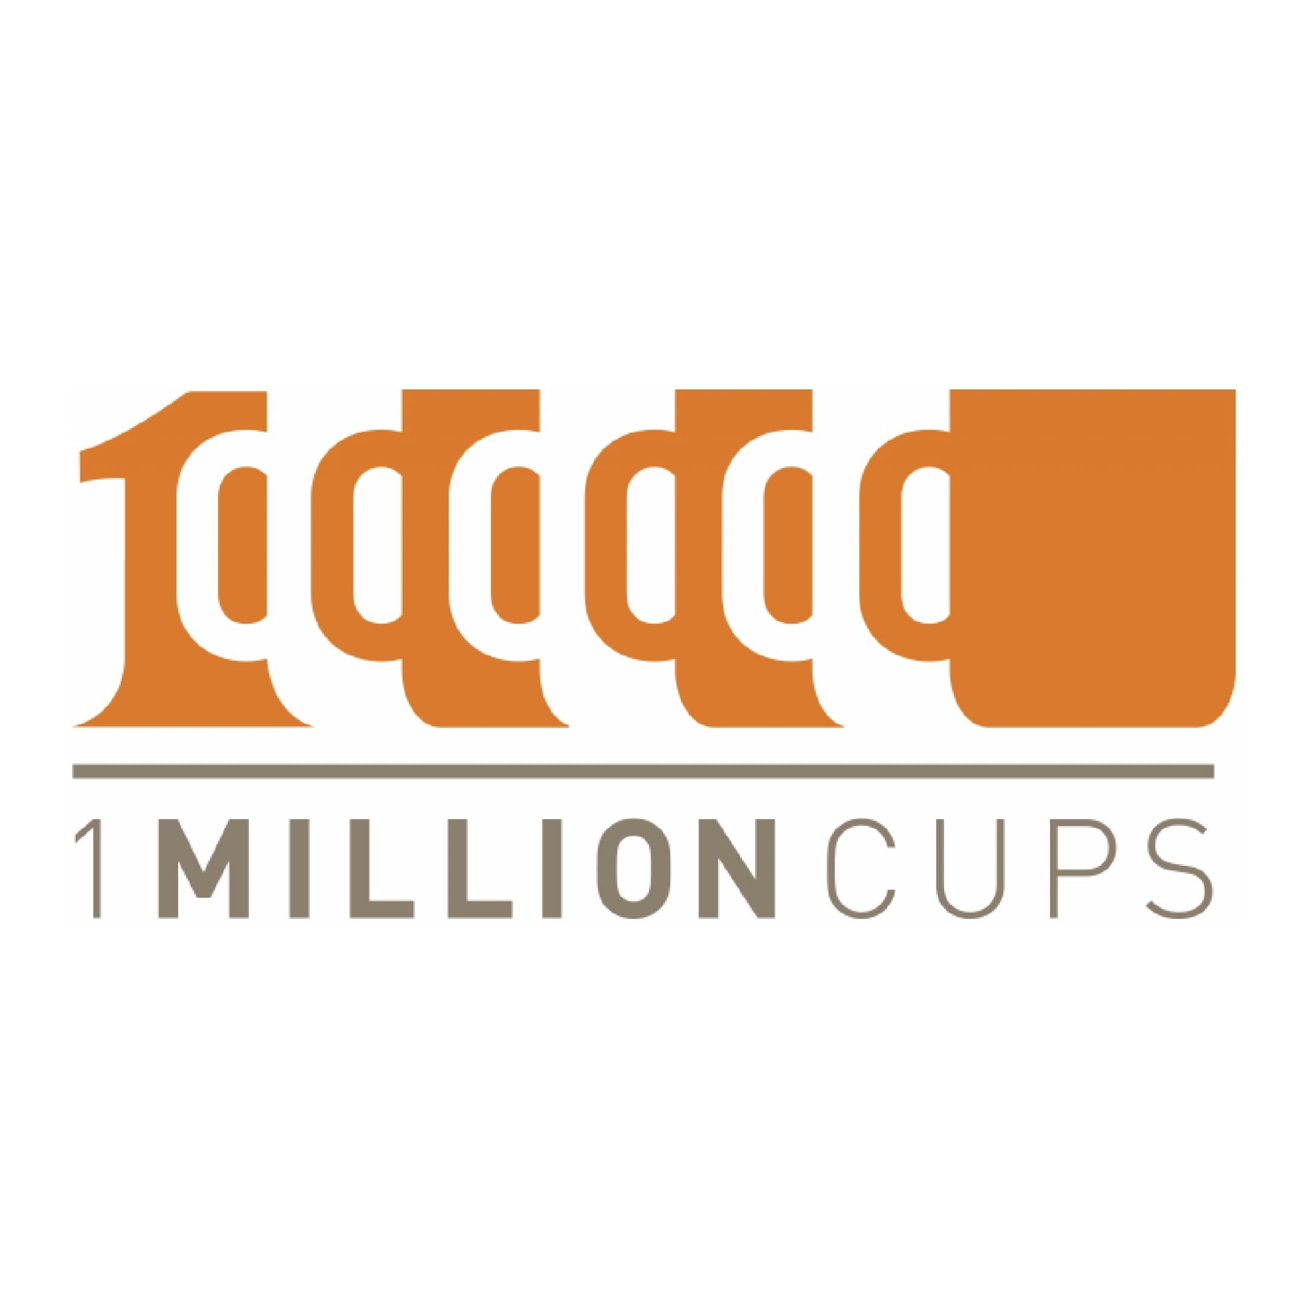 1 MILLION CUPS   A weekly networking and pitch event where entrepreneurs can present their early-stage business ideas to the local community. Designed by the Kauffmann Foundation to educate, engage, and connect entrepreneurs to their communities, 1 Million Cups is free and hosted at the Bentonville Exchange Wednesdays at 8am.